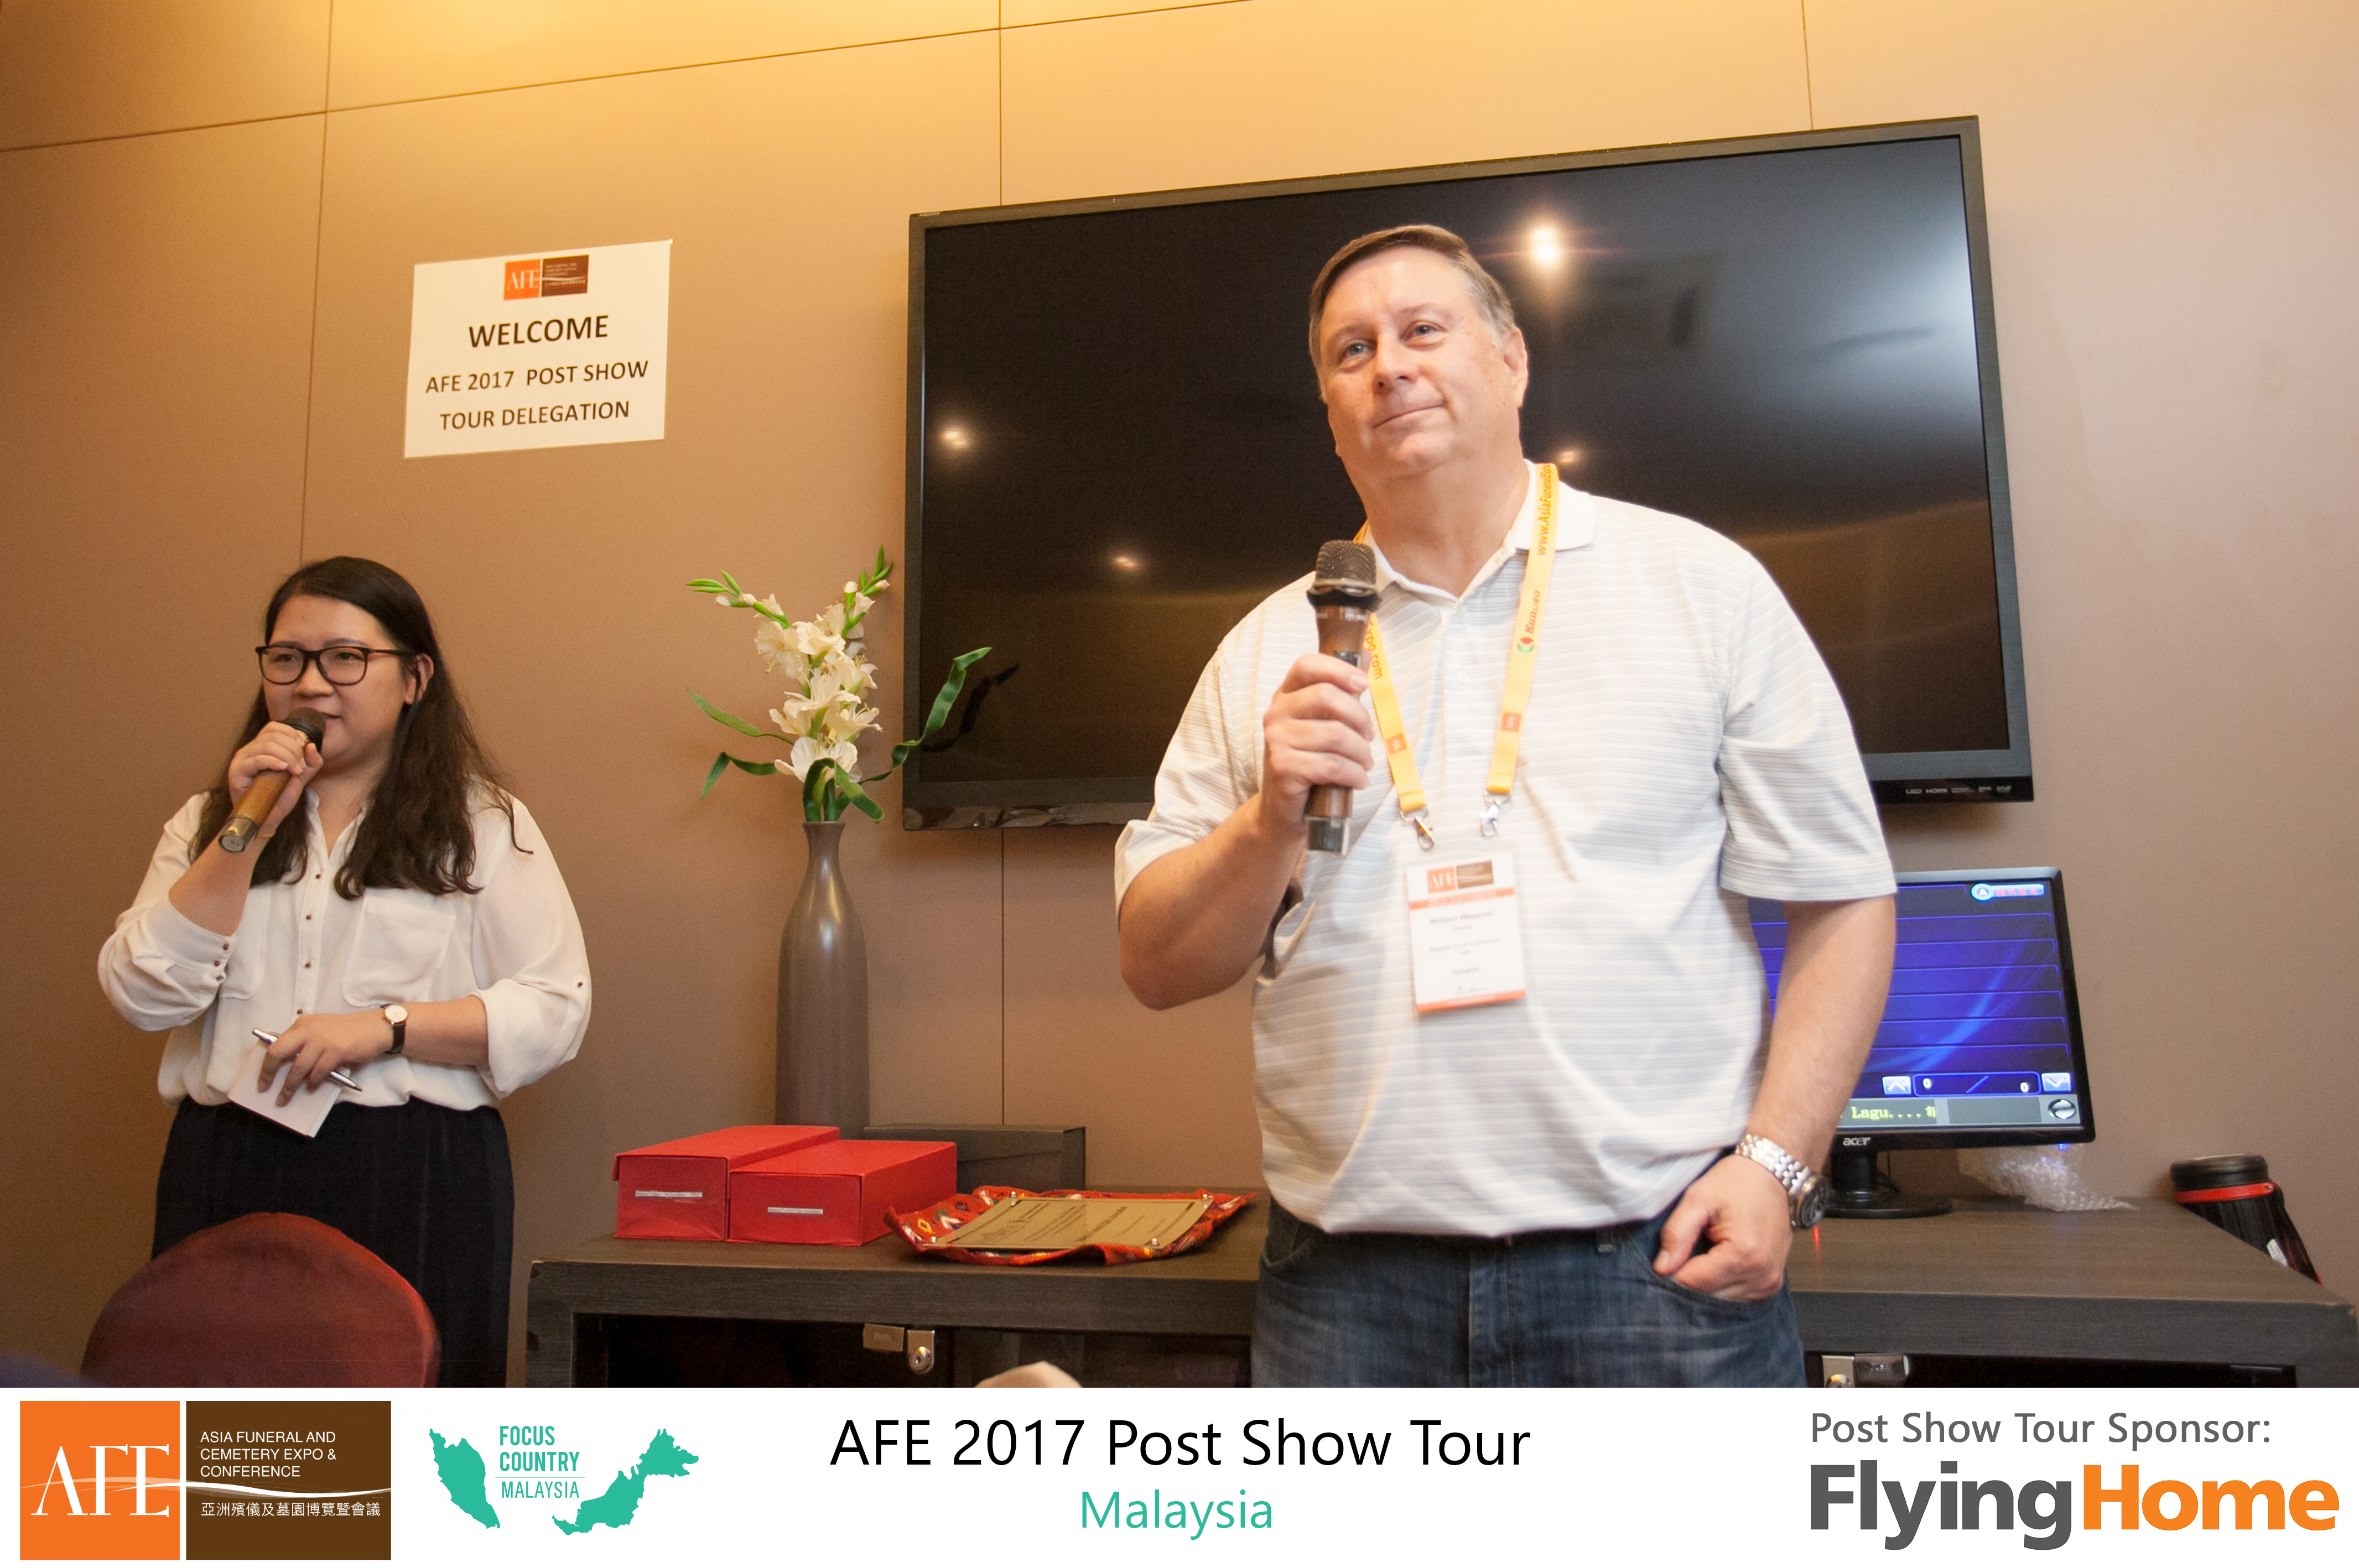 AFE Post Show Tour 2017 Day 1 - 13